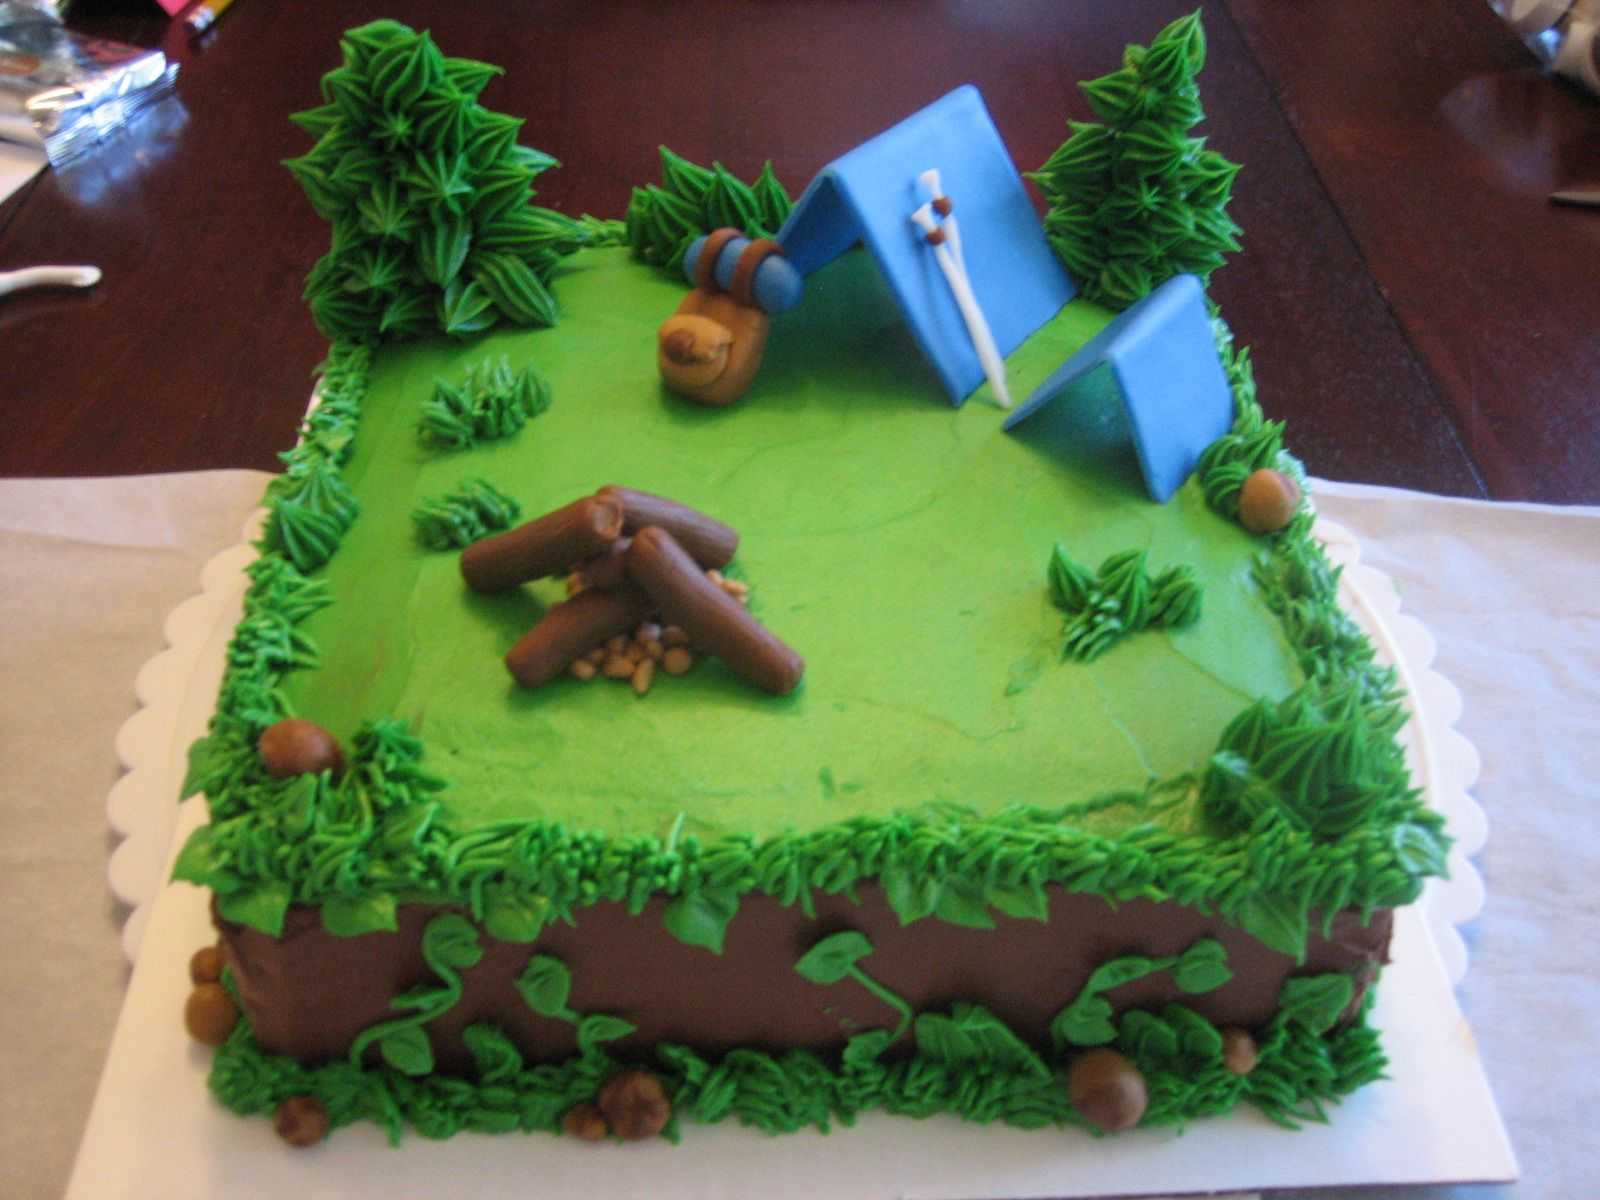 Cake Decorating Ideas For Boy Scouts : boy scout cupcake decorations sep jul wedding cake cakes ...